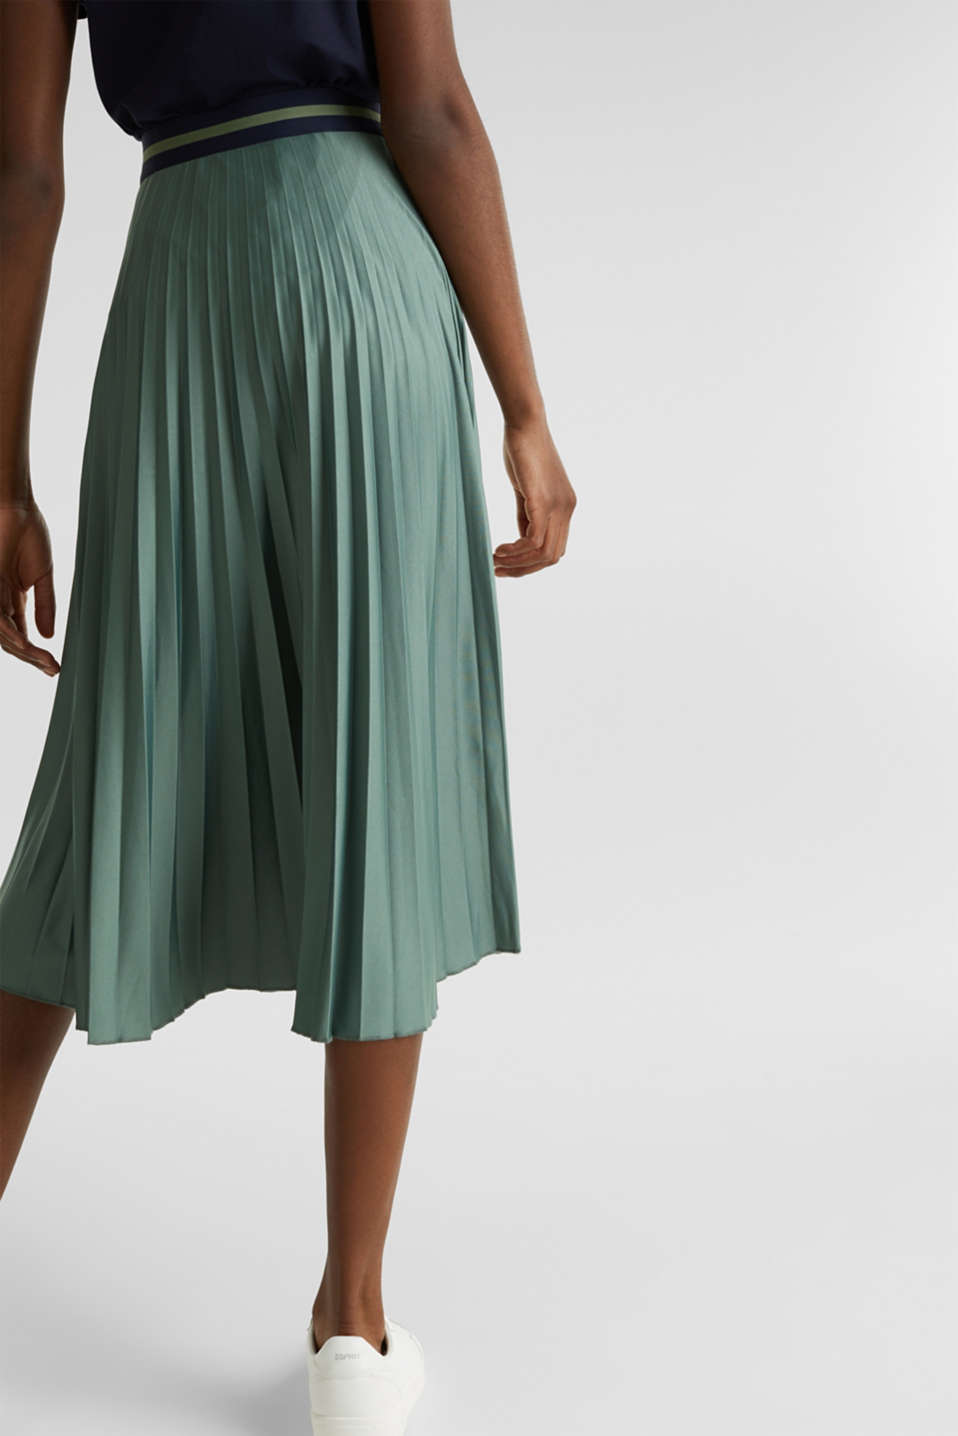 Stretch jersey skirt with accordion pleats, KHAKI GREEN, detail image number 2